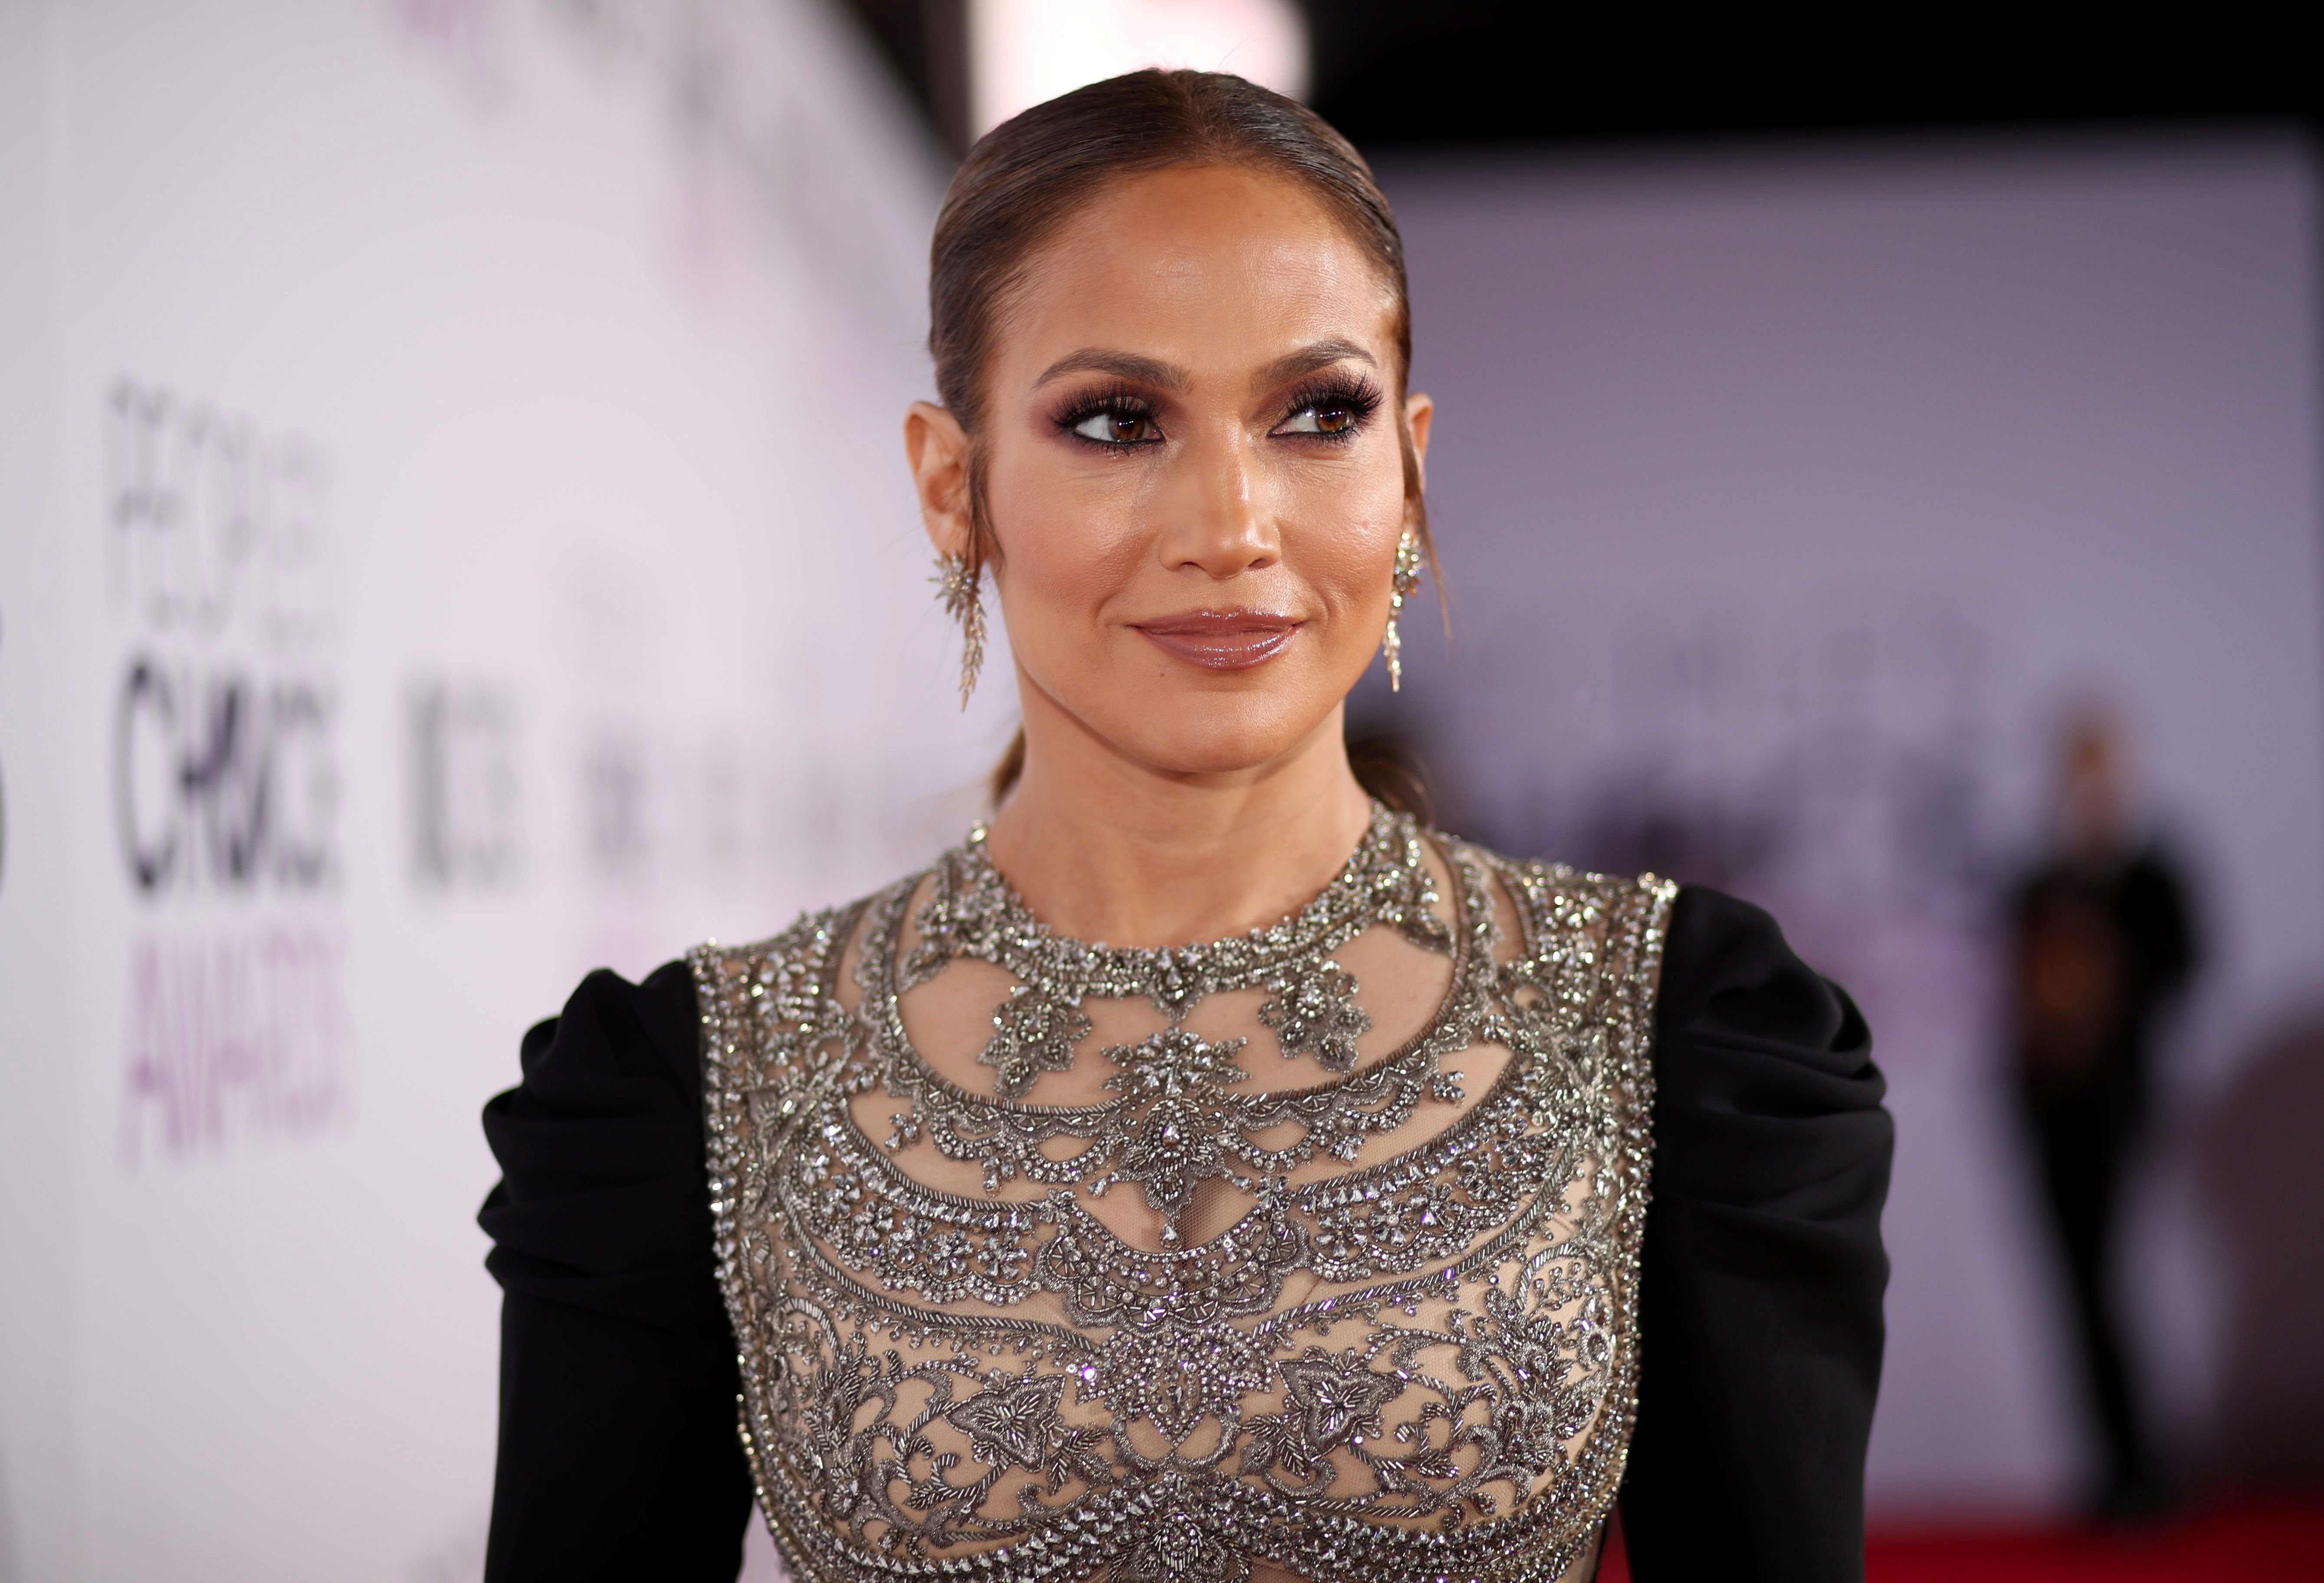 Jennifer Lopez at the People's Choice Awards 2017 at Microsoft Theater on January 18, 2017 in Los Angeles, California | Photo: Getty Images